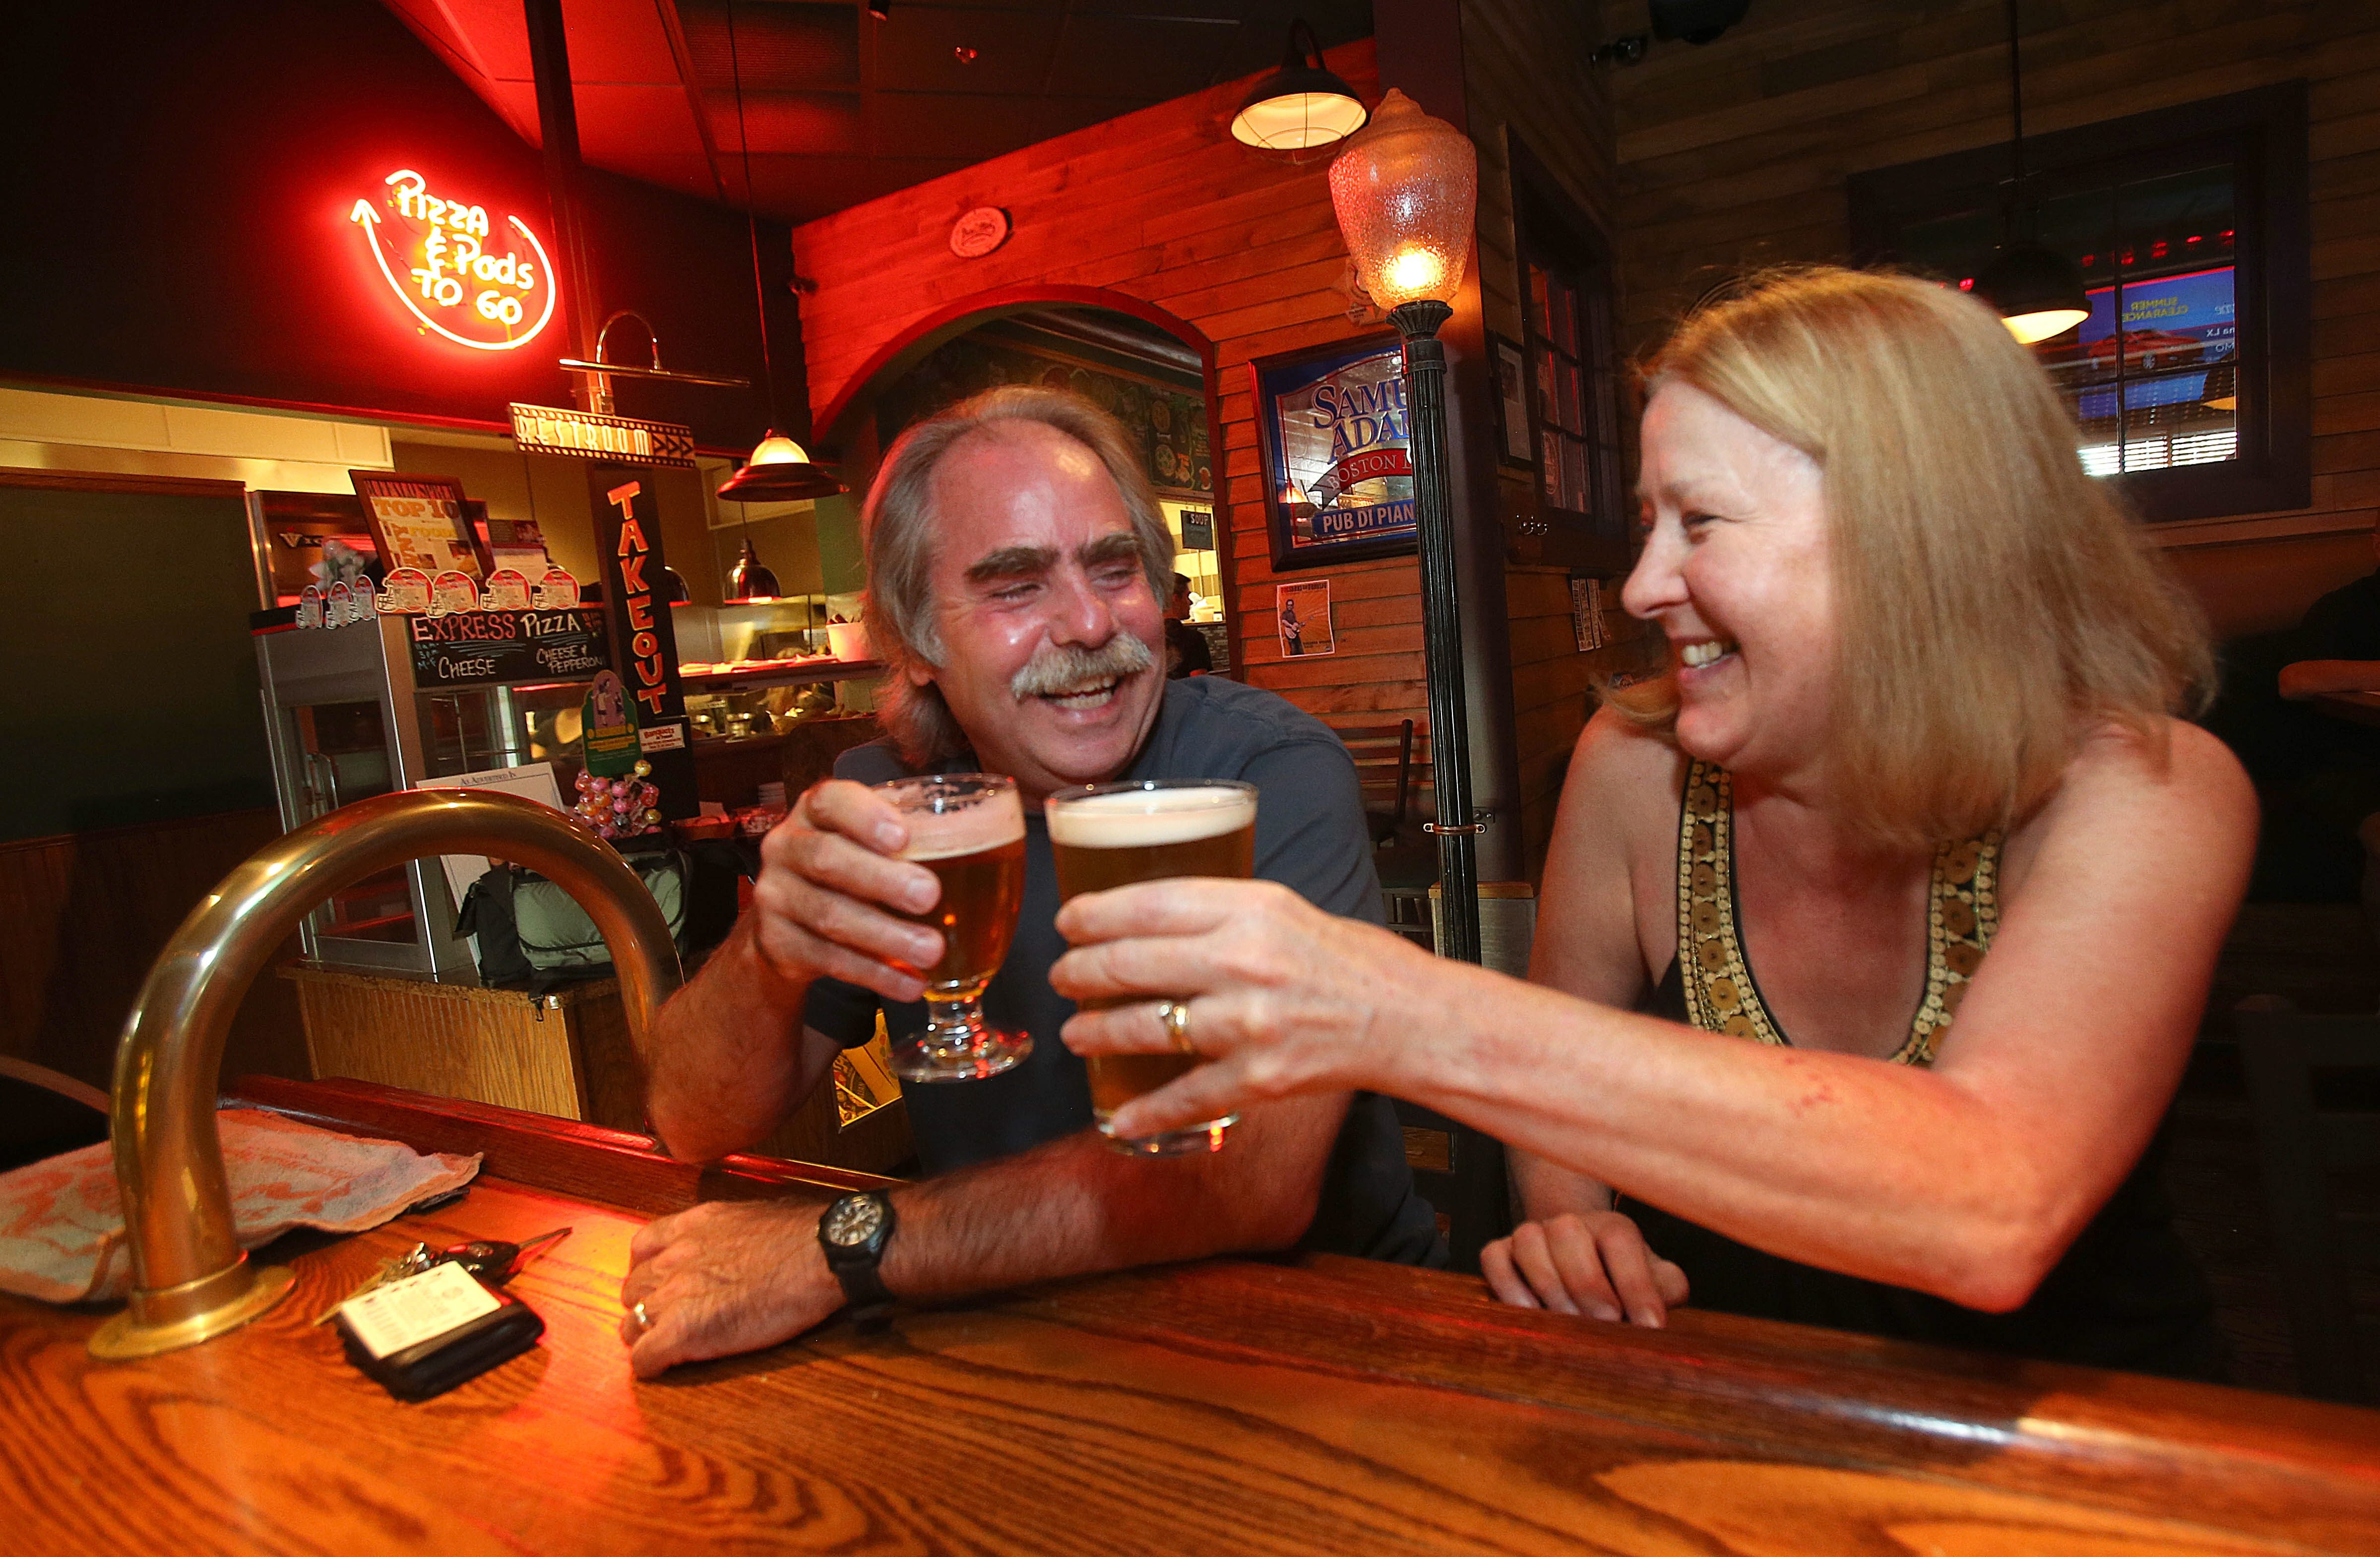 Microbrew beer fans Mike and Sylvia MacDonald of Lockport toast to their craft beer offerings at the Pizza Plant on Transit Road in Williamsville.